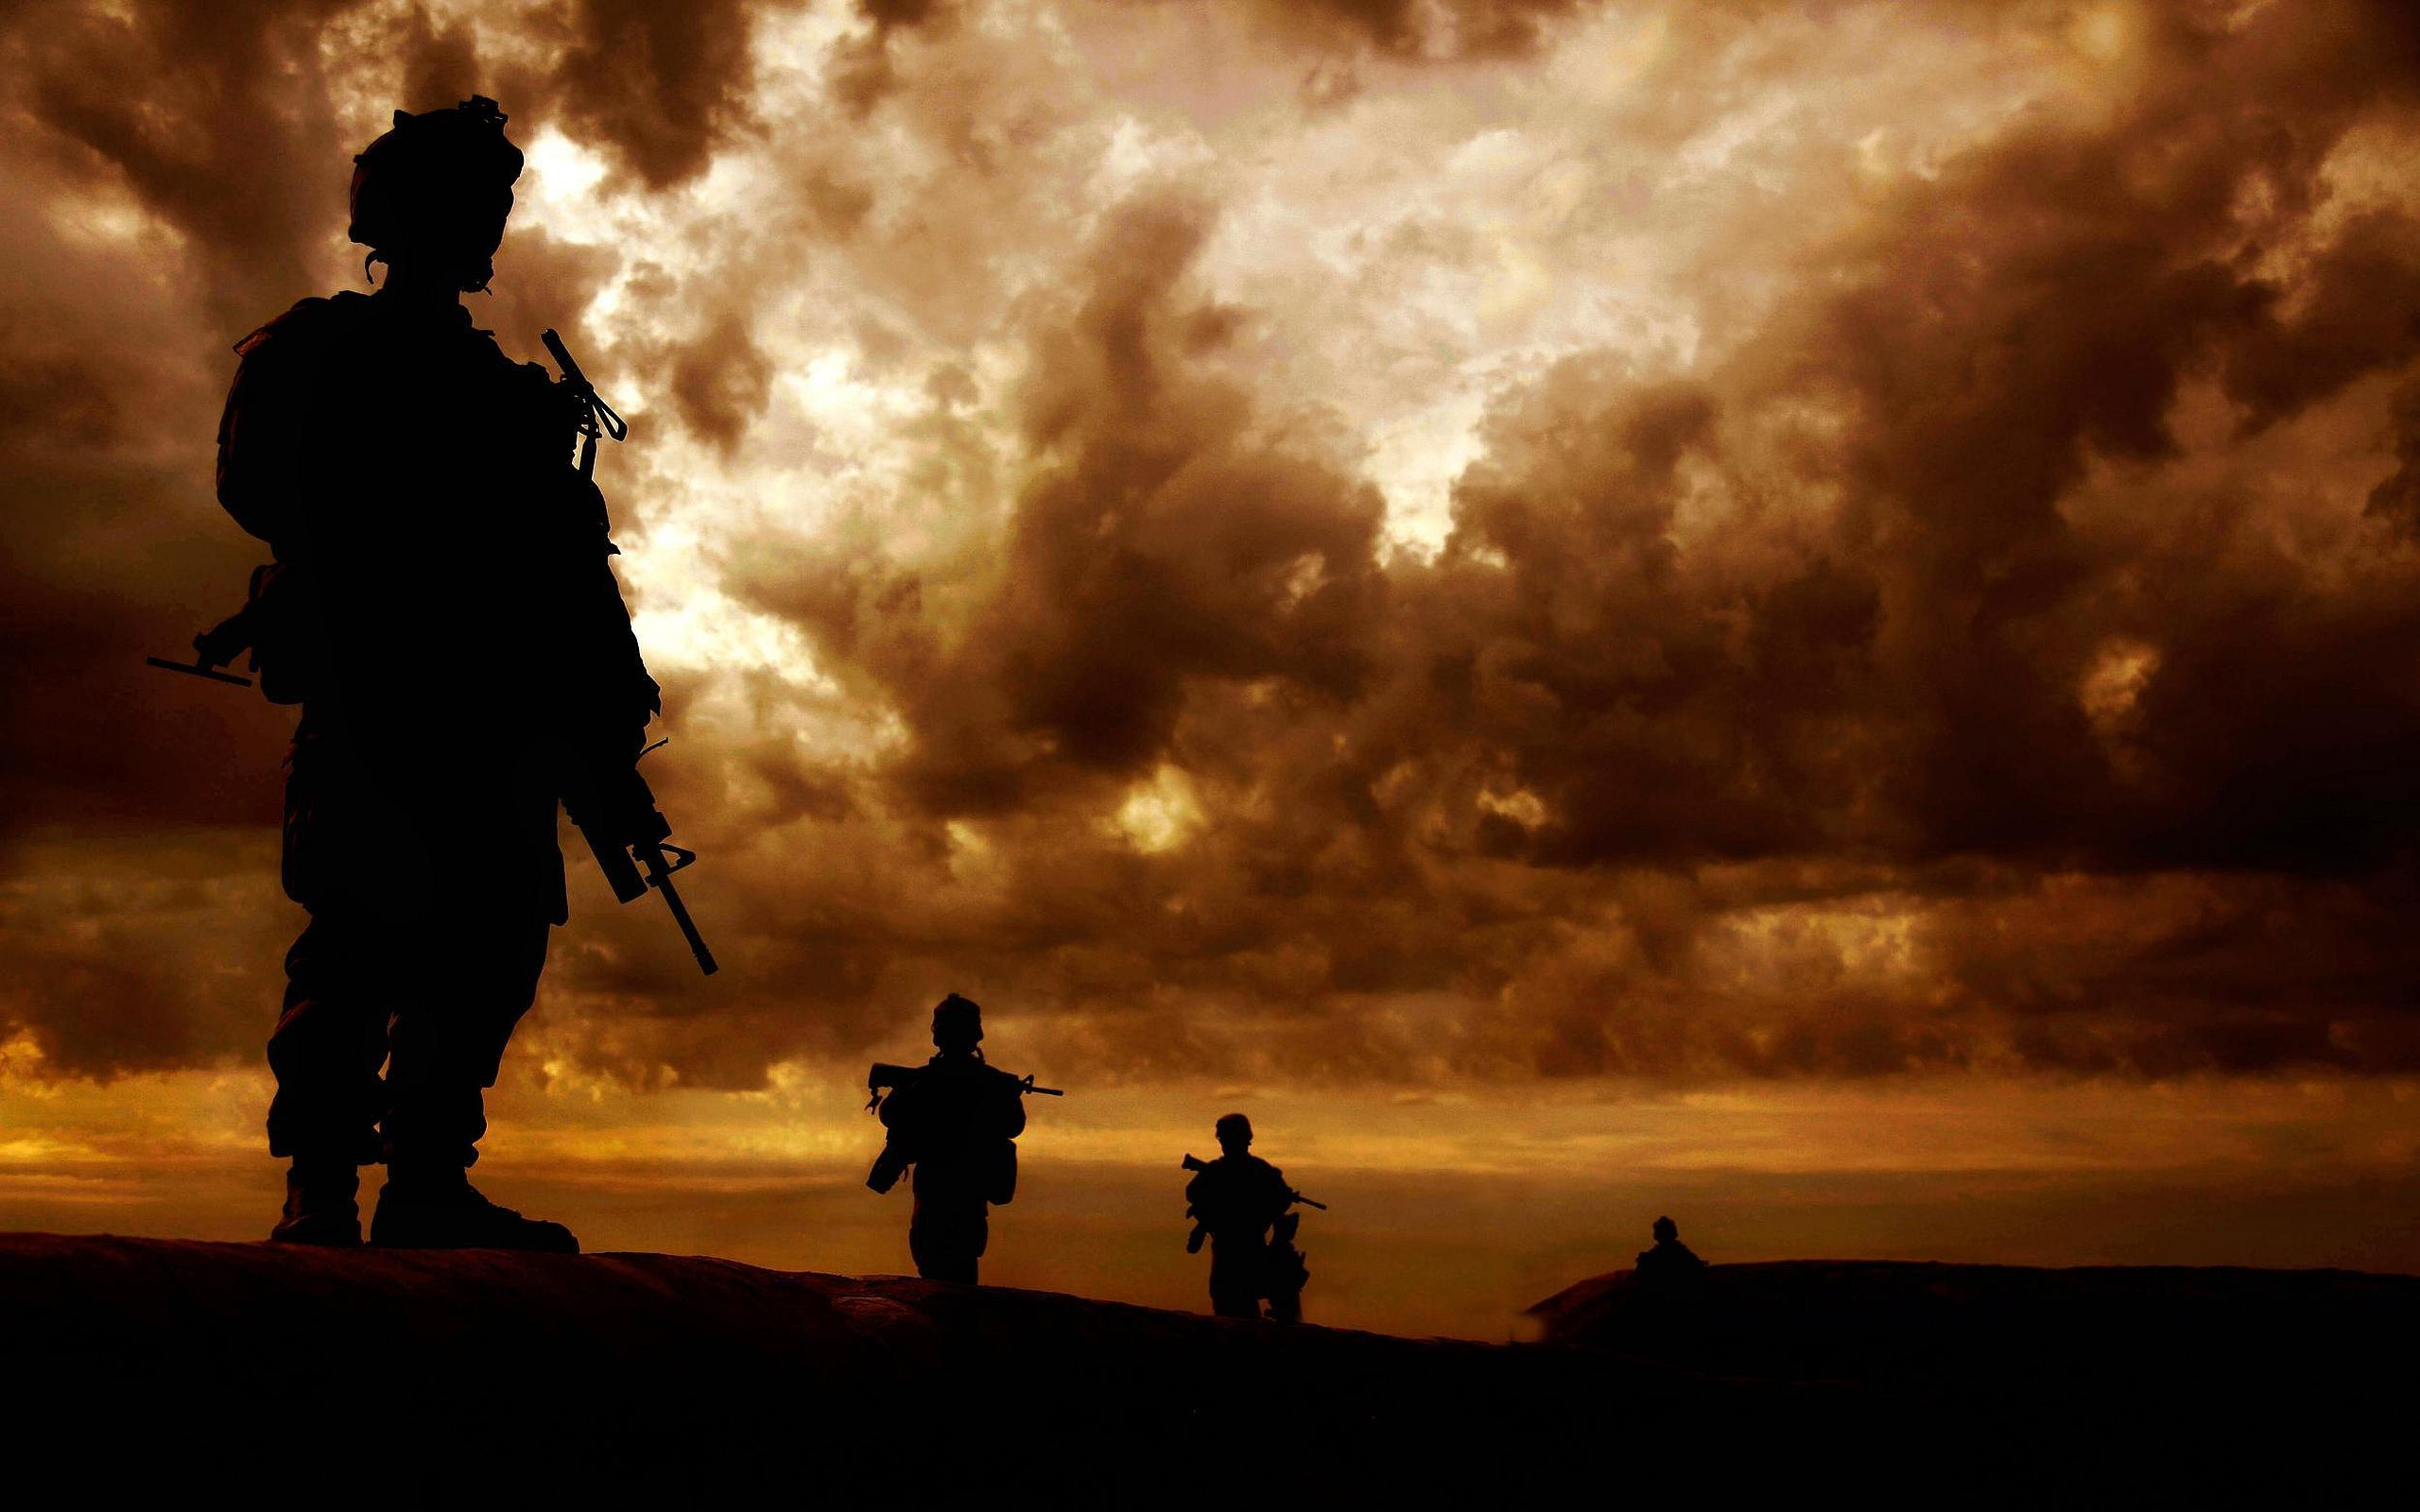 American Soldier Wallpaper Military